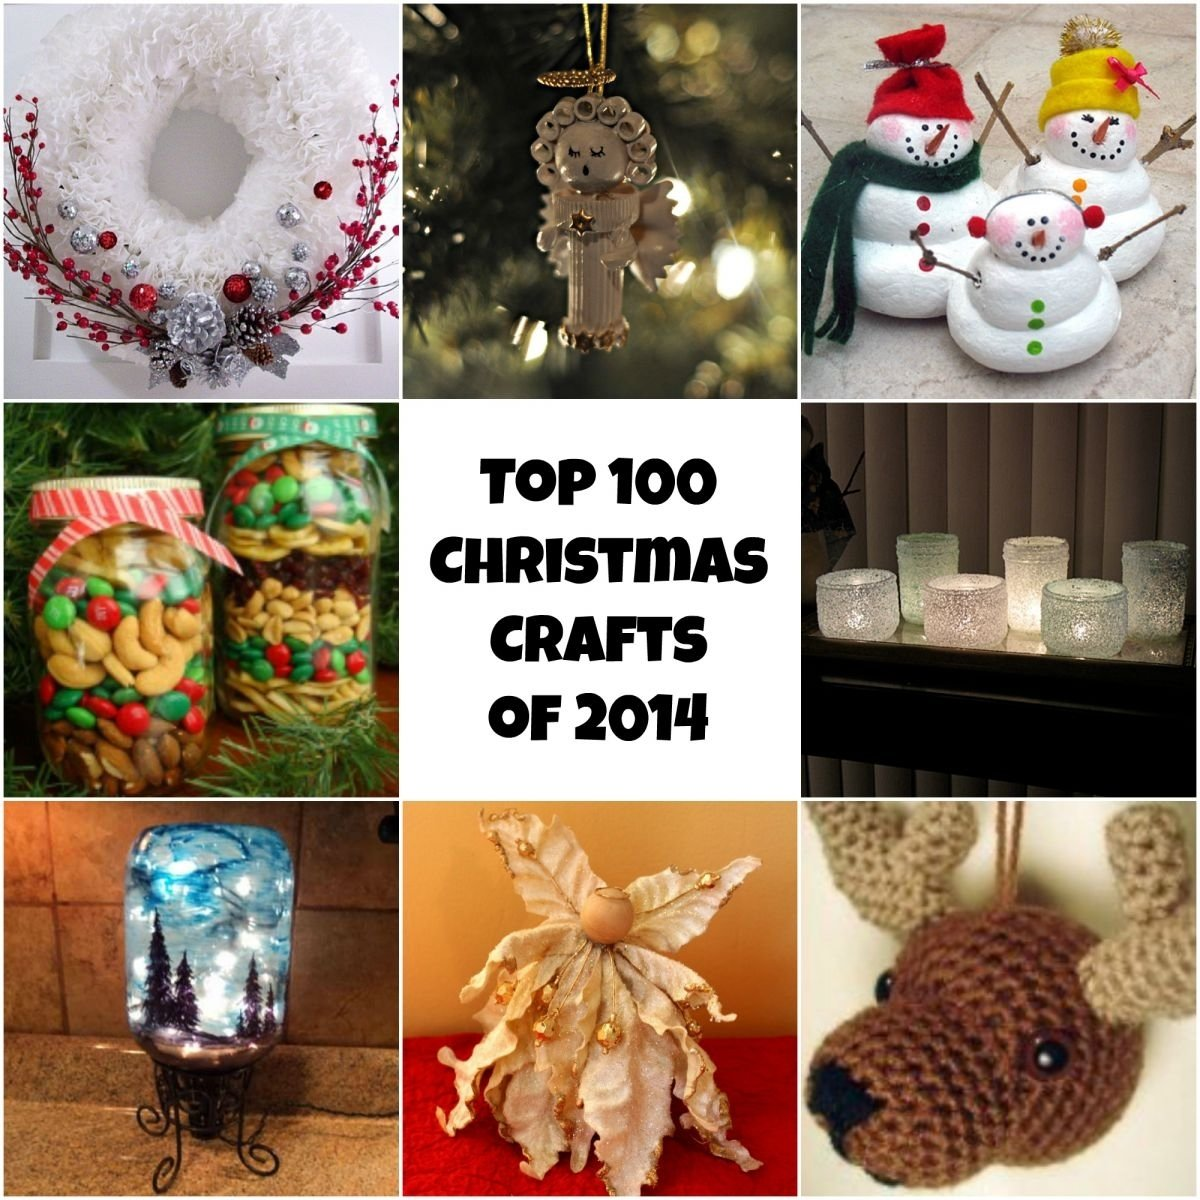 10 Wonderful Homemade Christmas Gift Ideas For Adults top 100 diy christmas crafts of 2014 homemade christmas ornaments 7 2020